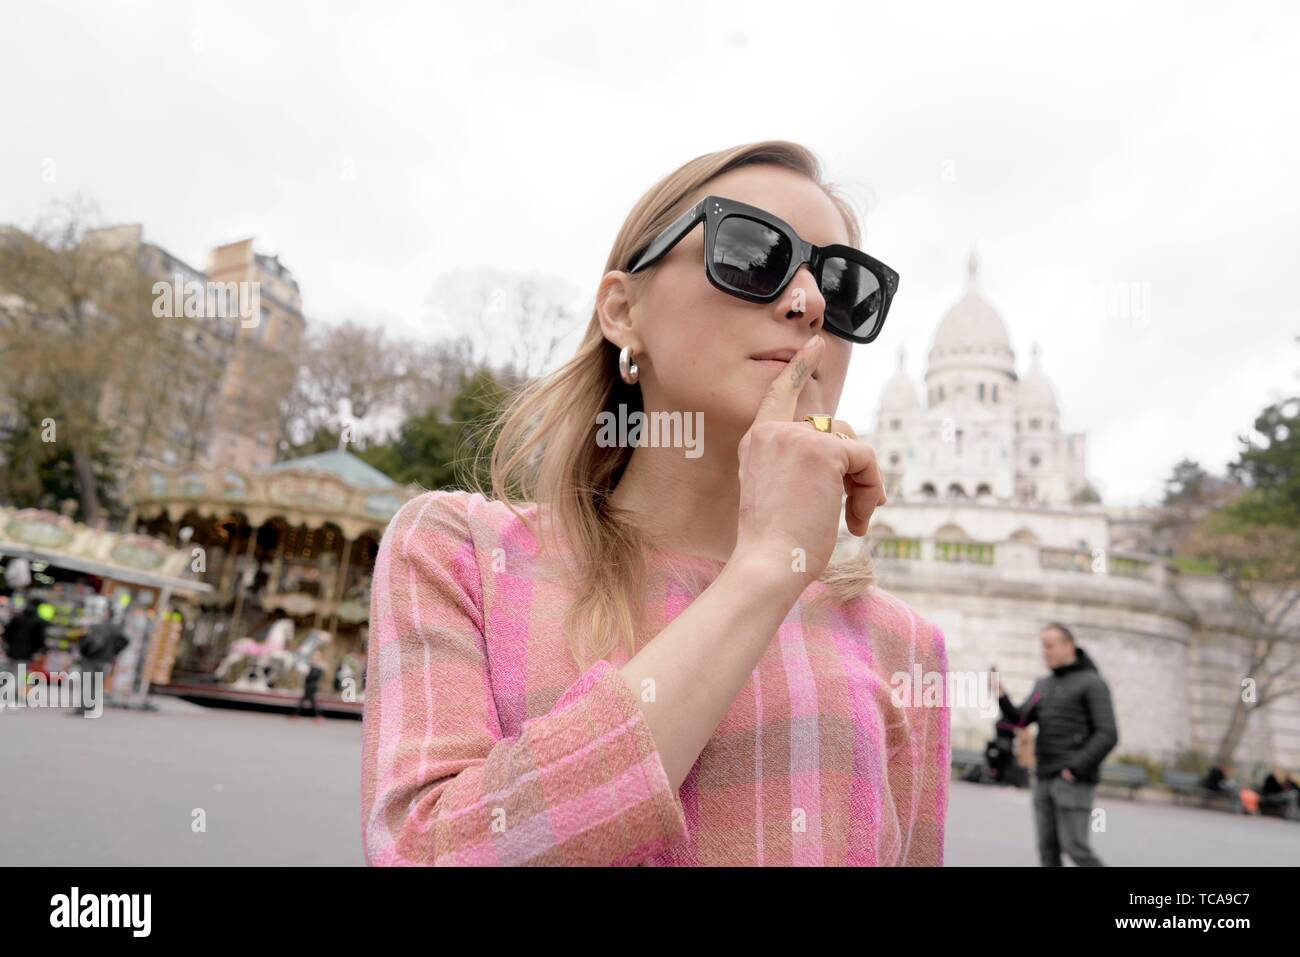 stylish blogger woman in front of touristic sight Basilica Sacré-Cœur, silence fingers in front of lips, during fashion week, in city Paris, France, Stock Photo